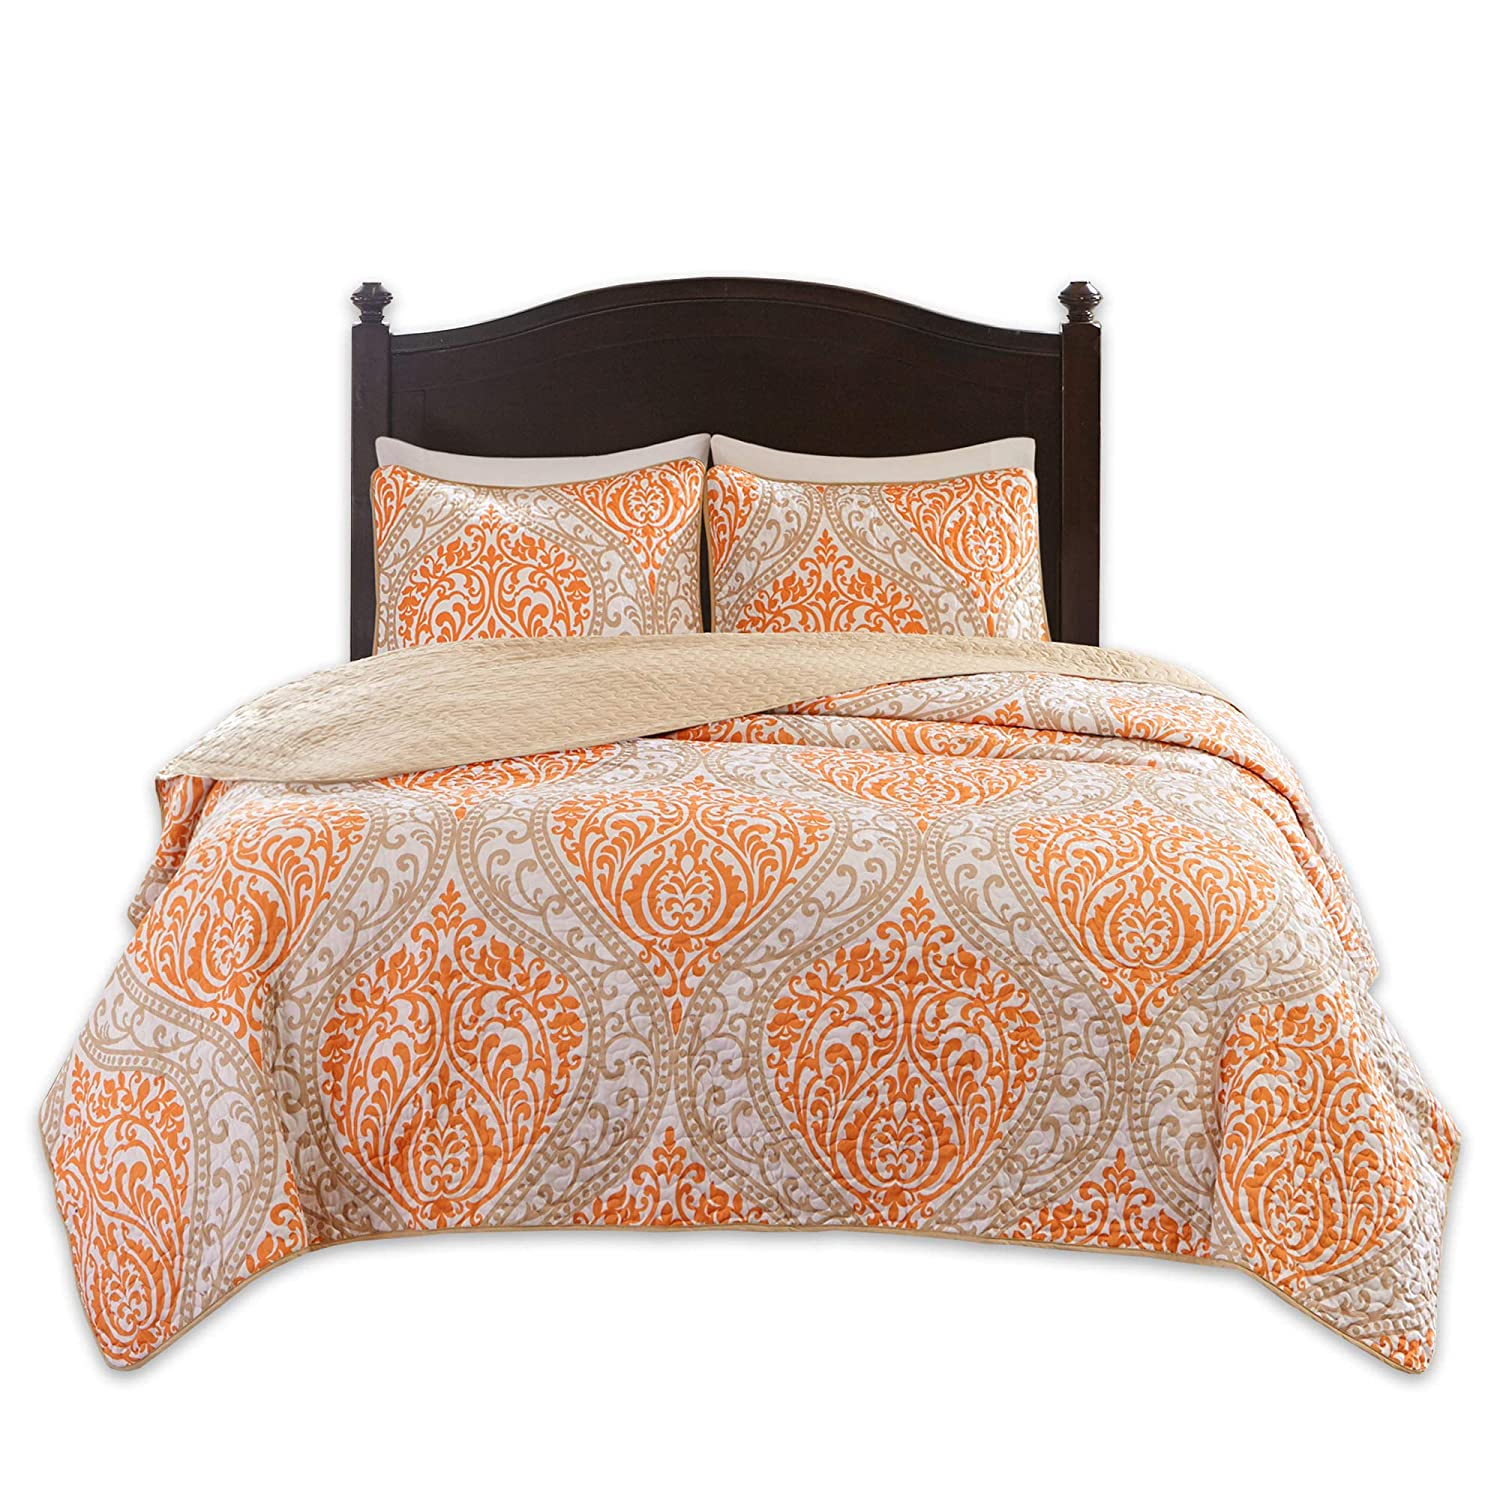 Comfort Spaces Coco 3 Piece Quilt Coverlet Bedspread Ultra Soft Printed Damask Pattern Hypoallergenic Bedding Set, Full/Queen, Orange - Taupe